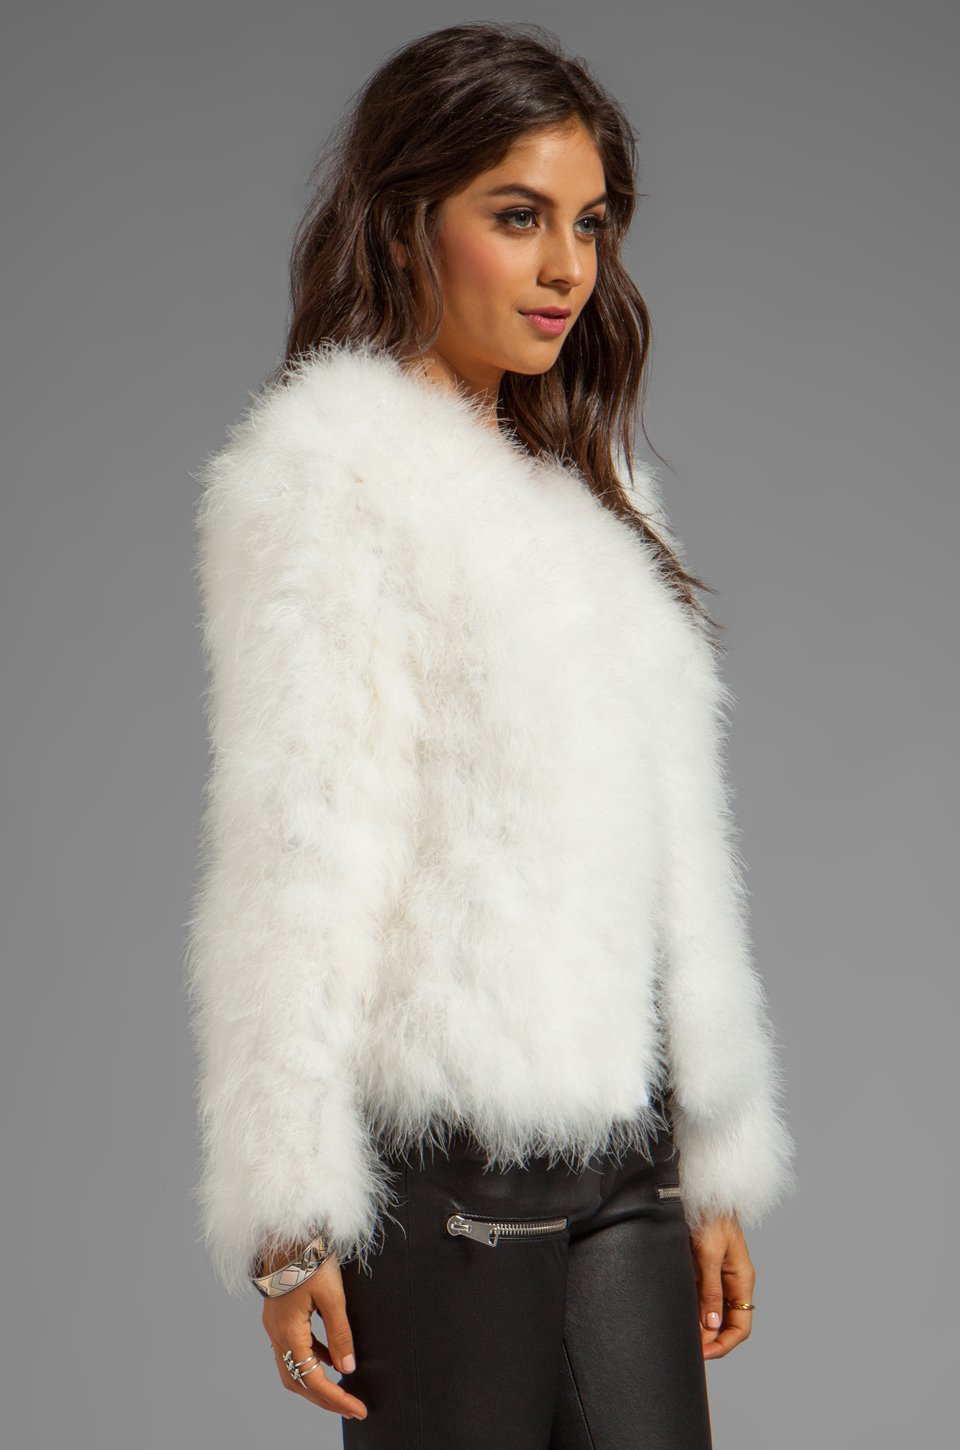 Line & dot Marabou Faux Fur Jacket in White in White | Lyst